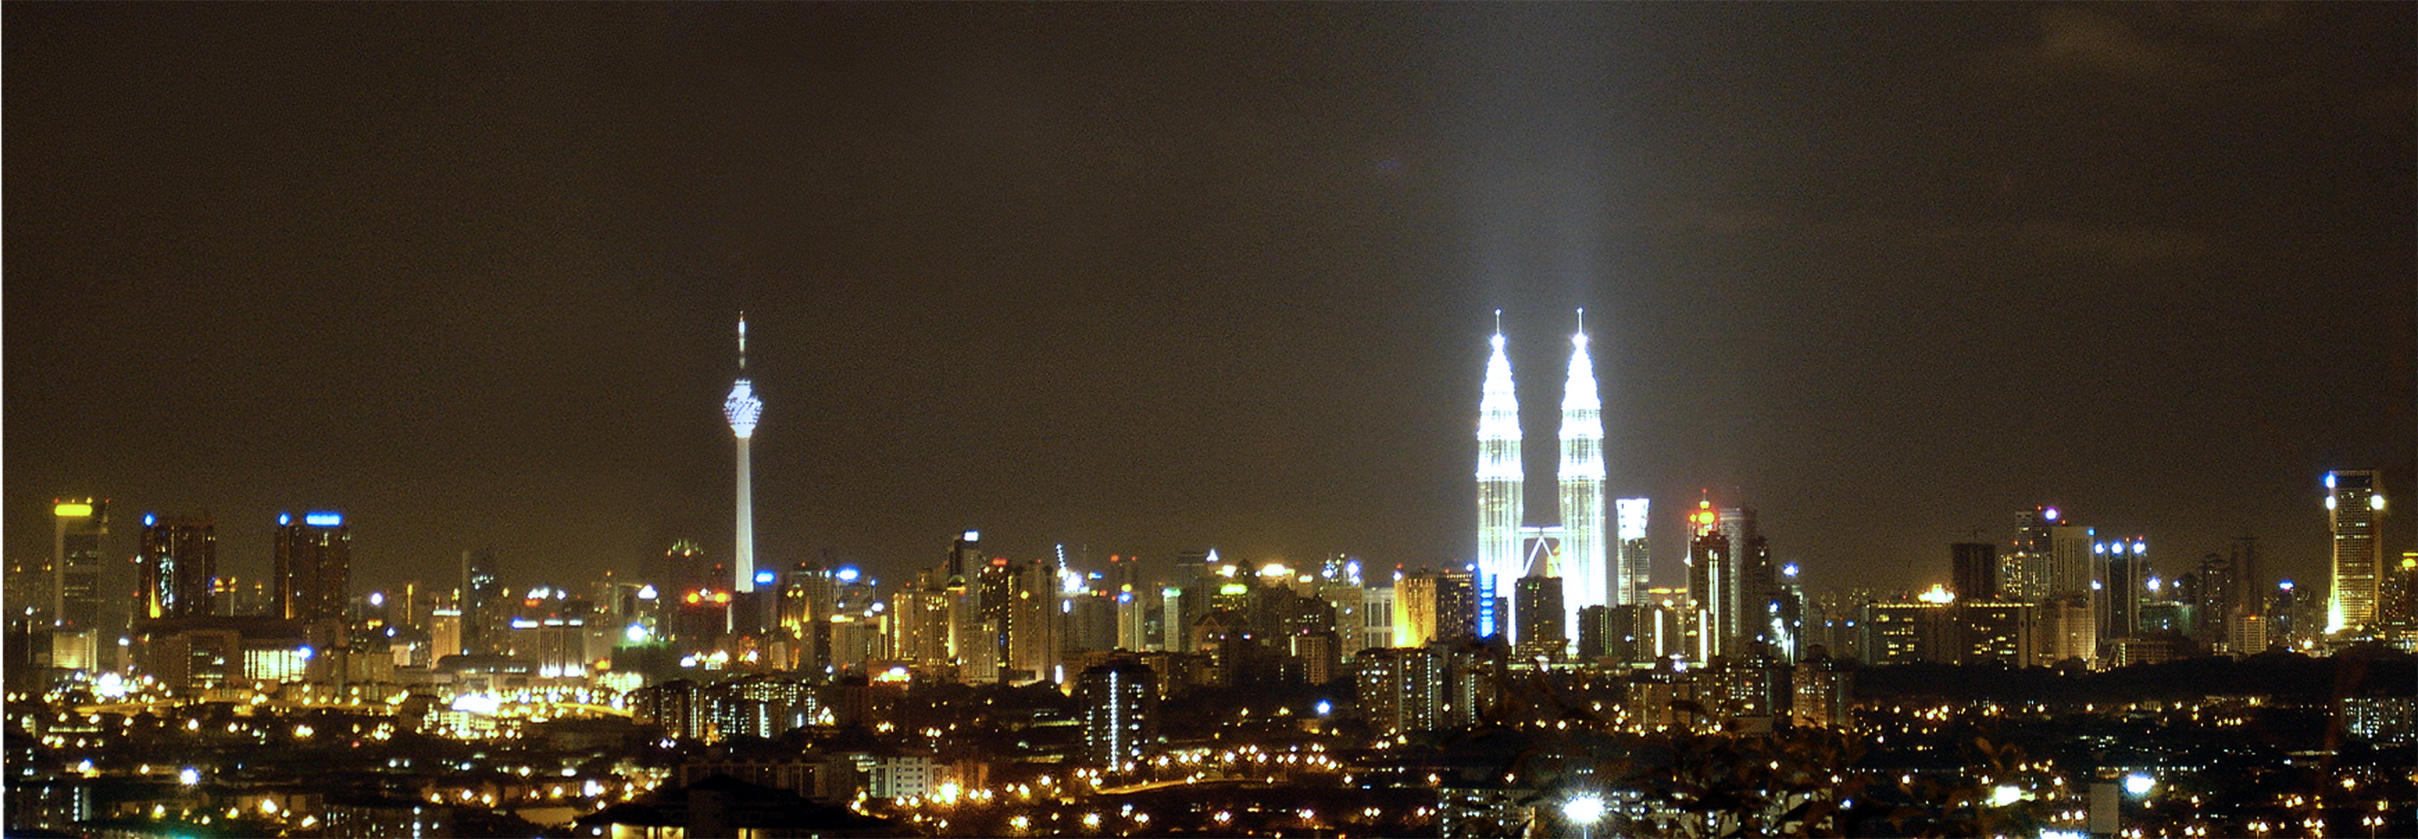 File:KL-night skyline.png